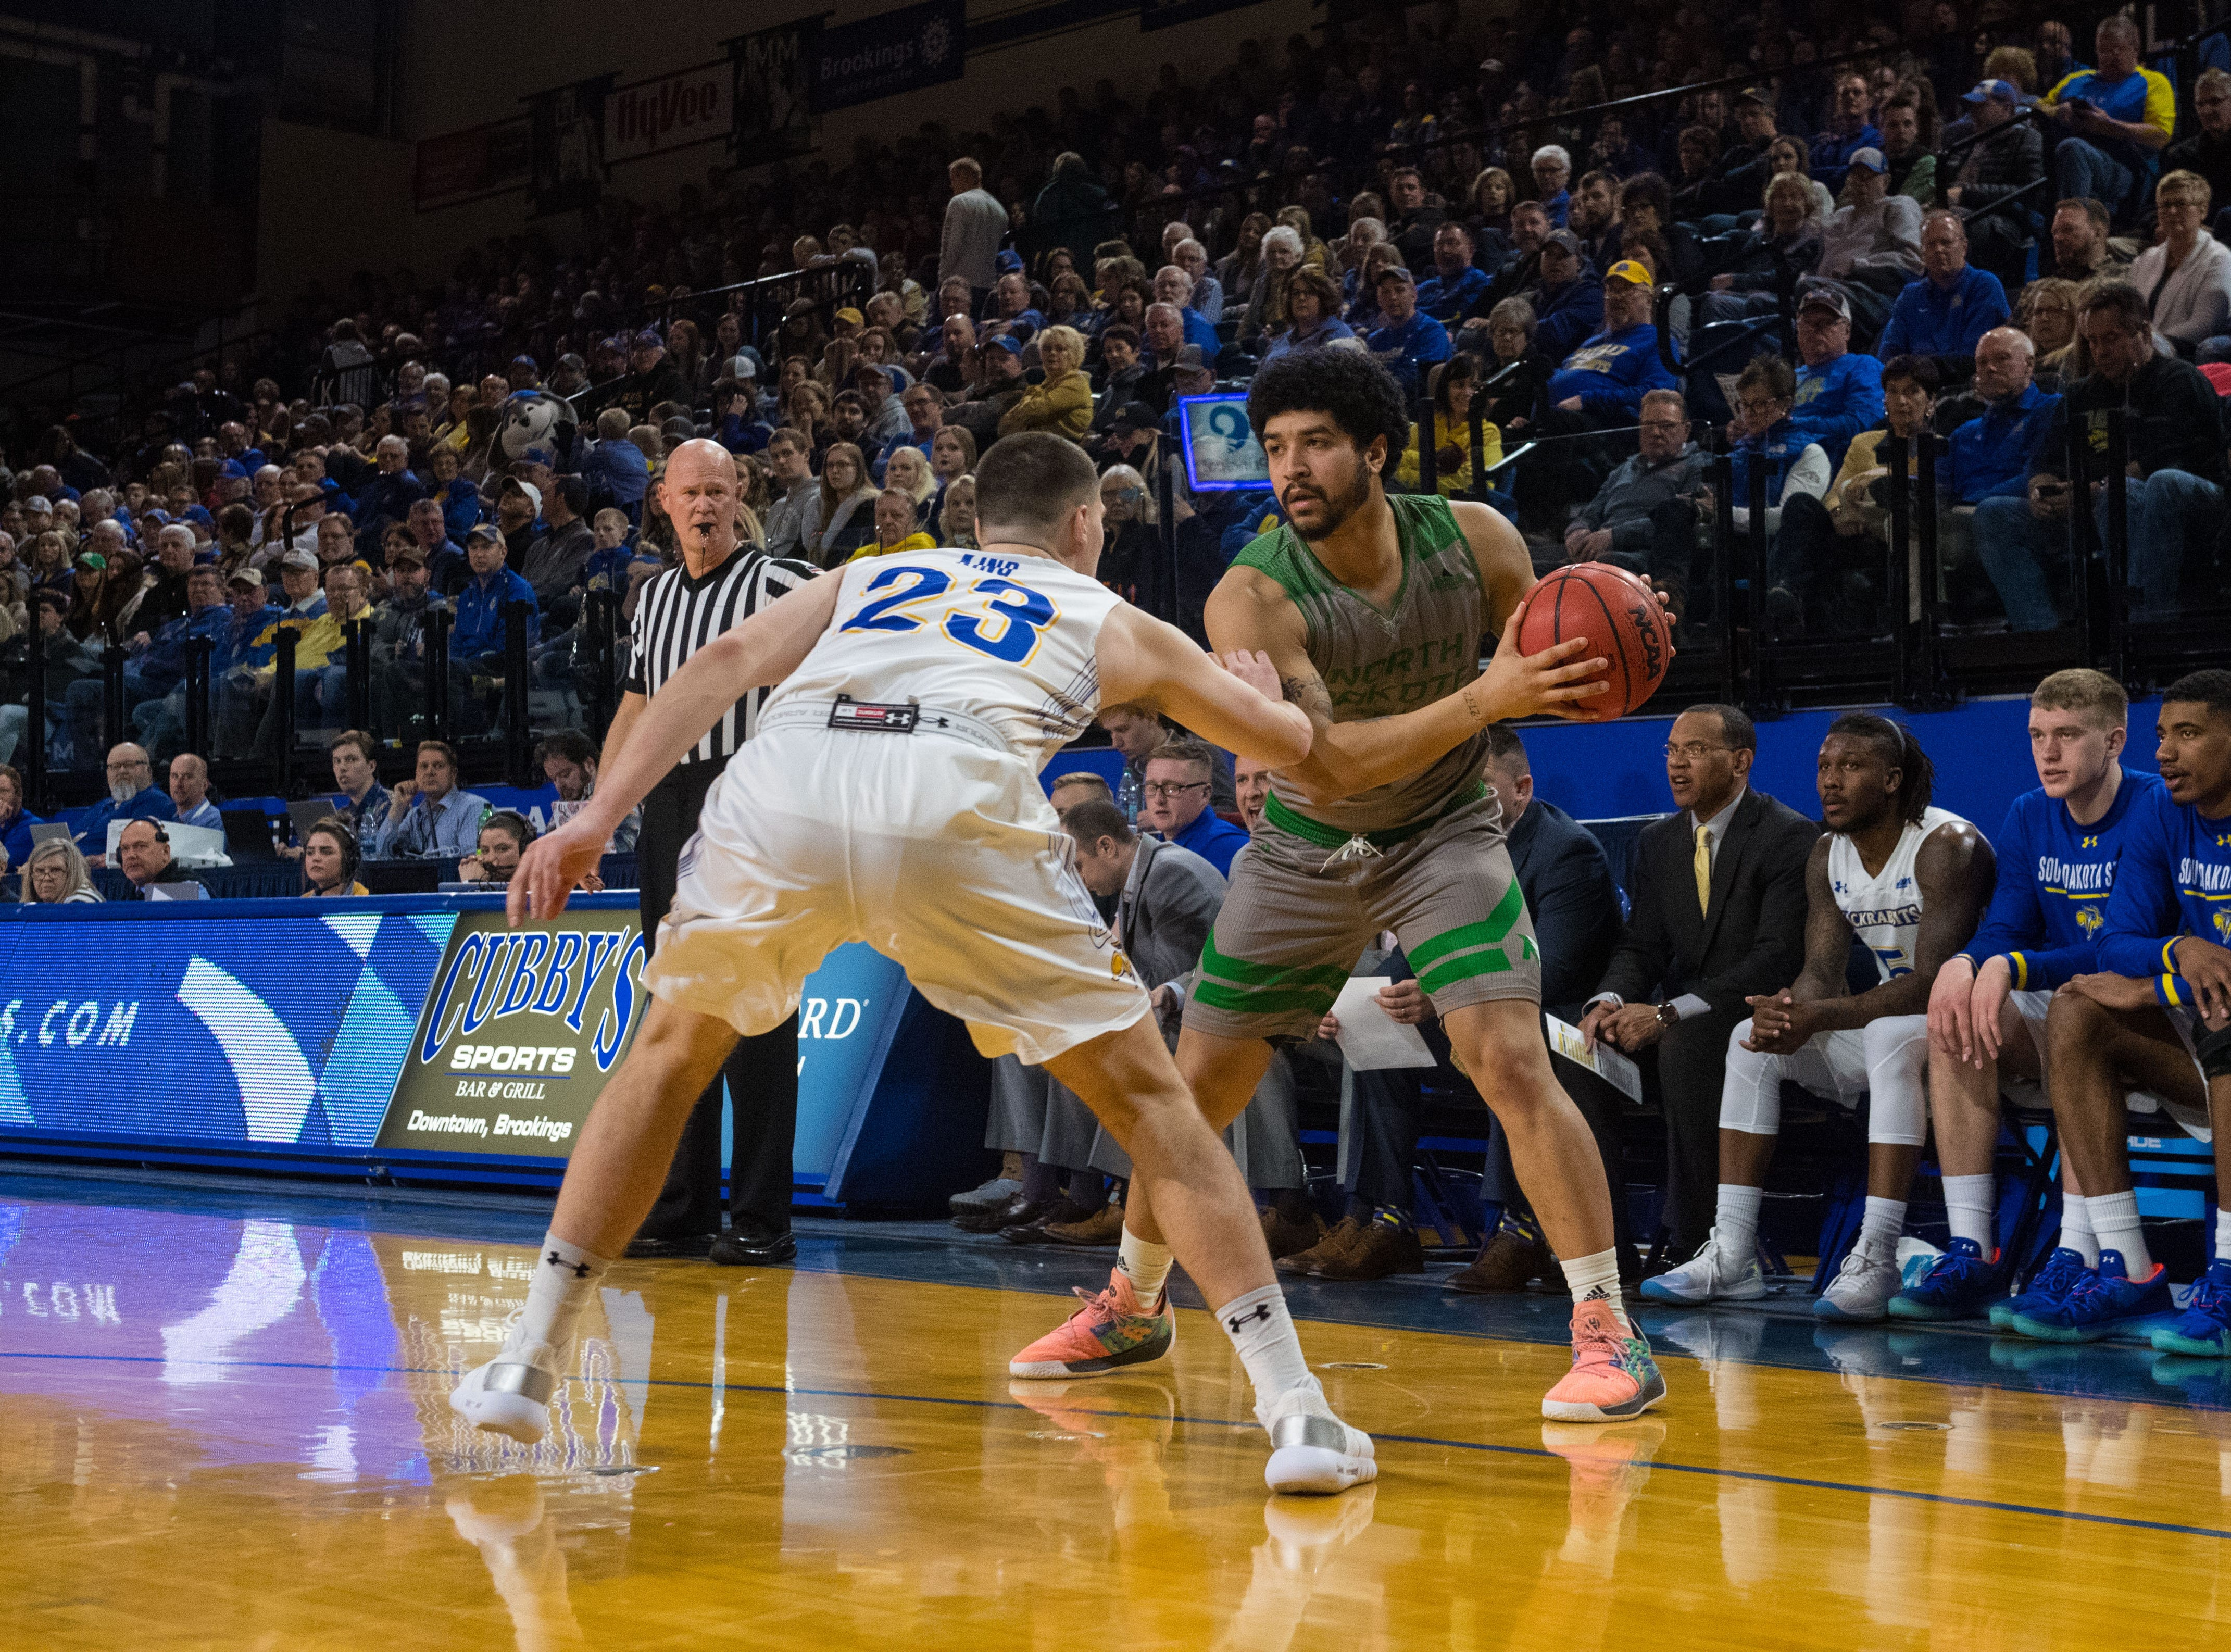 North Dakota's Marlon Stewart (1) looks to pass the ball during a game against South Dakota State in Brookings, S.D., Saturday, Feb. 9, 2019.